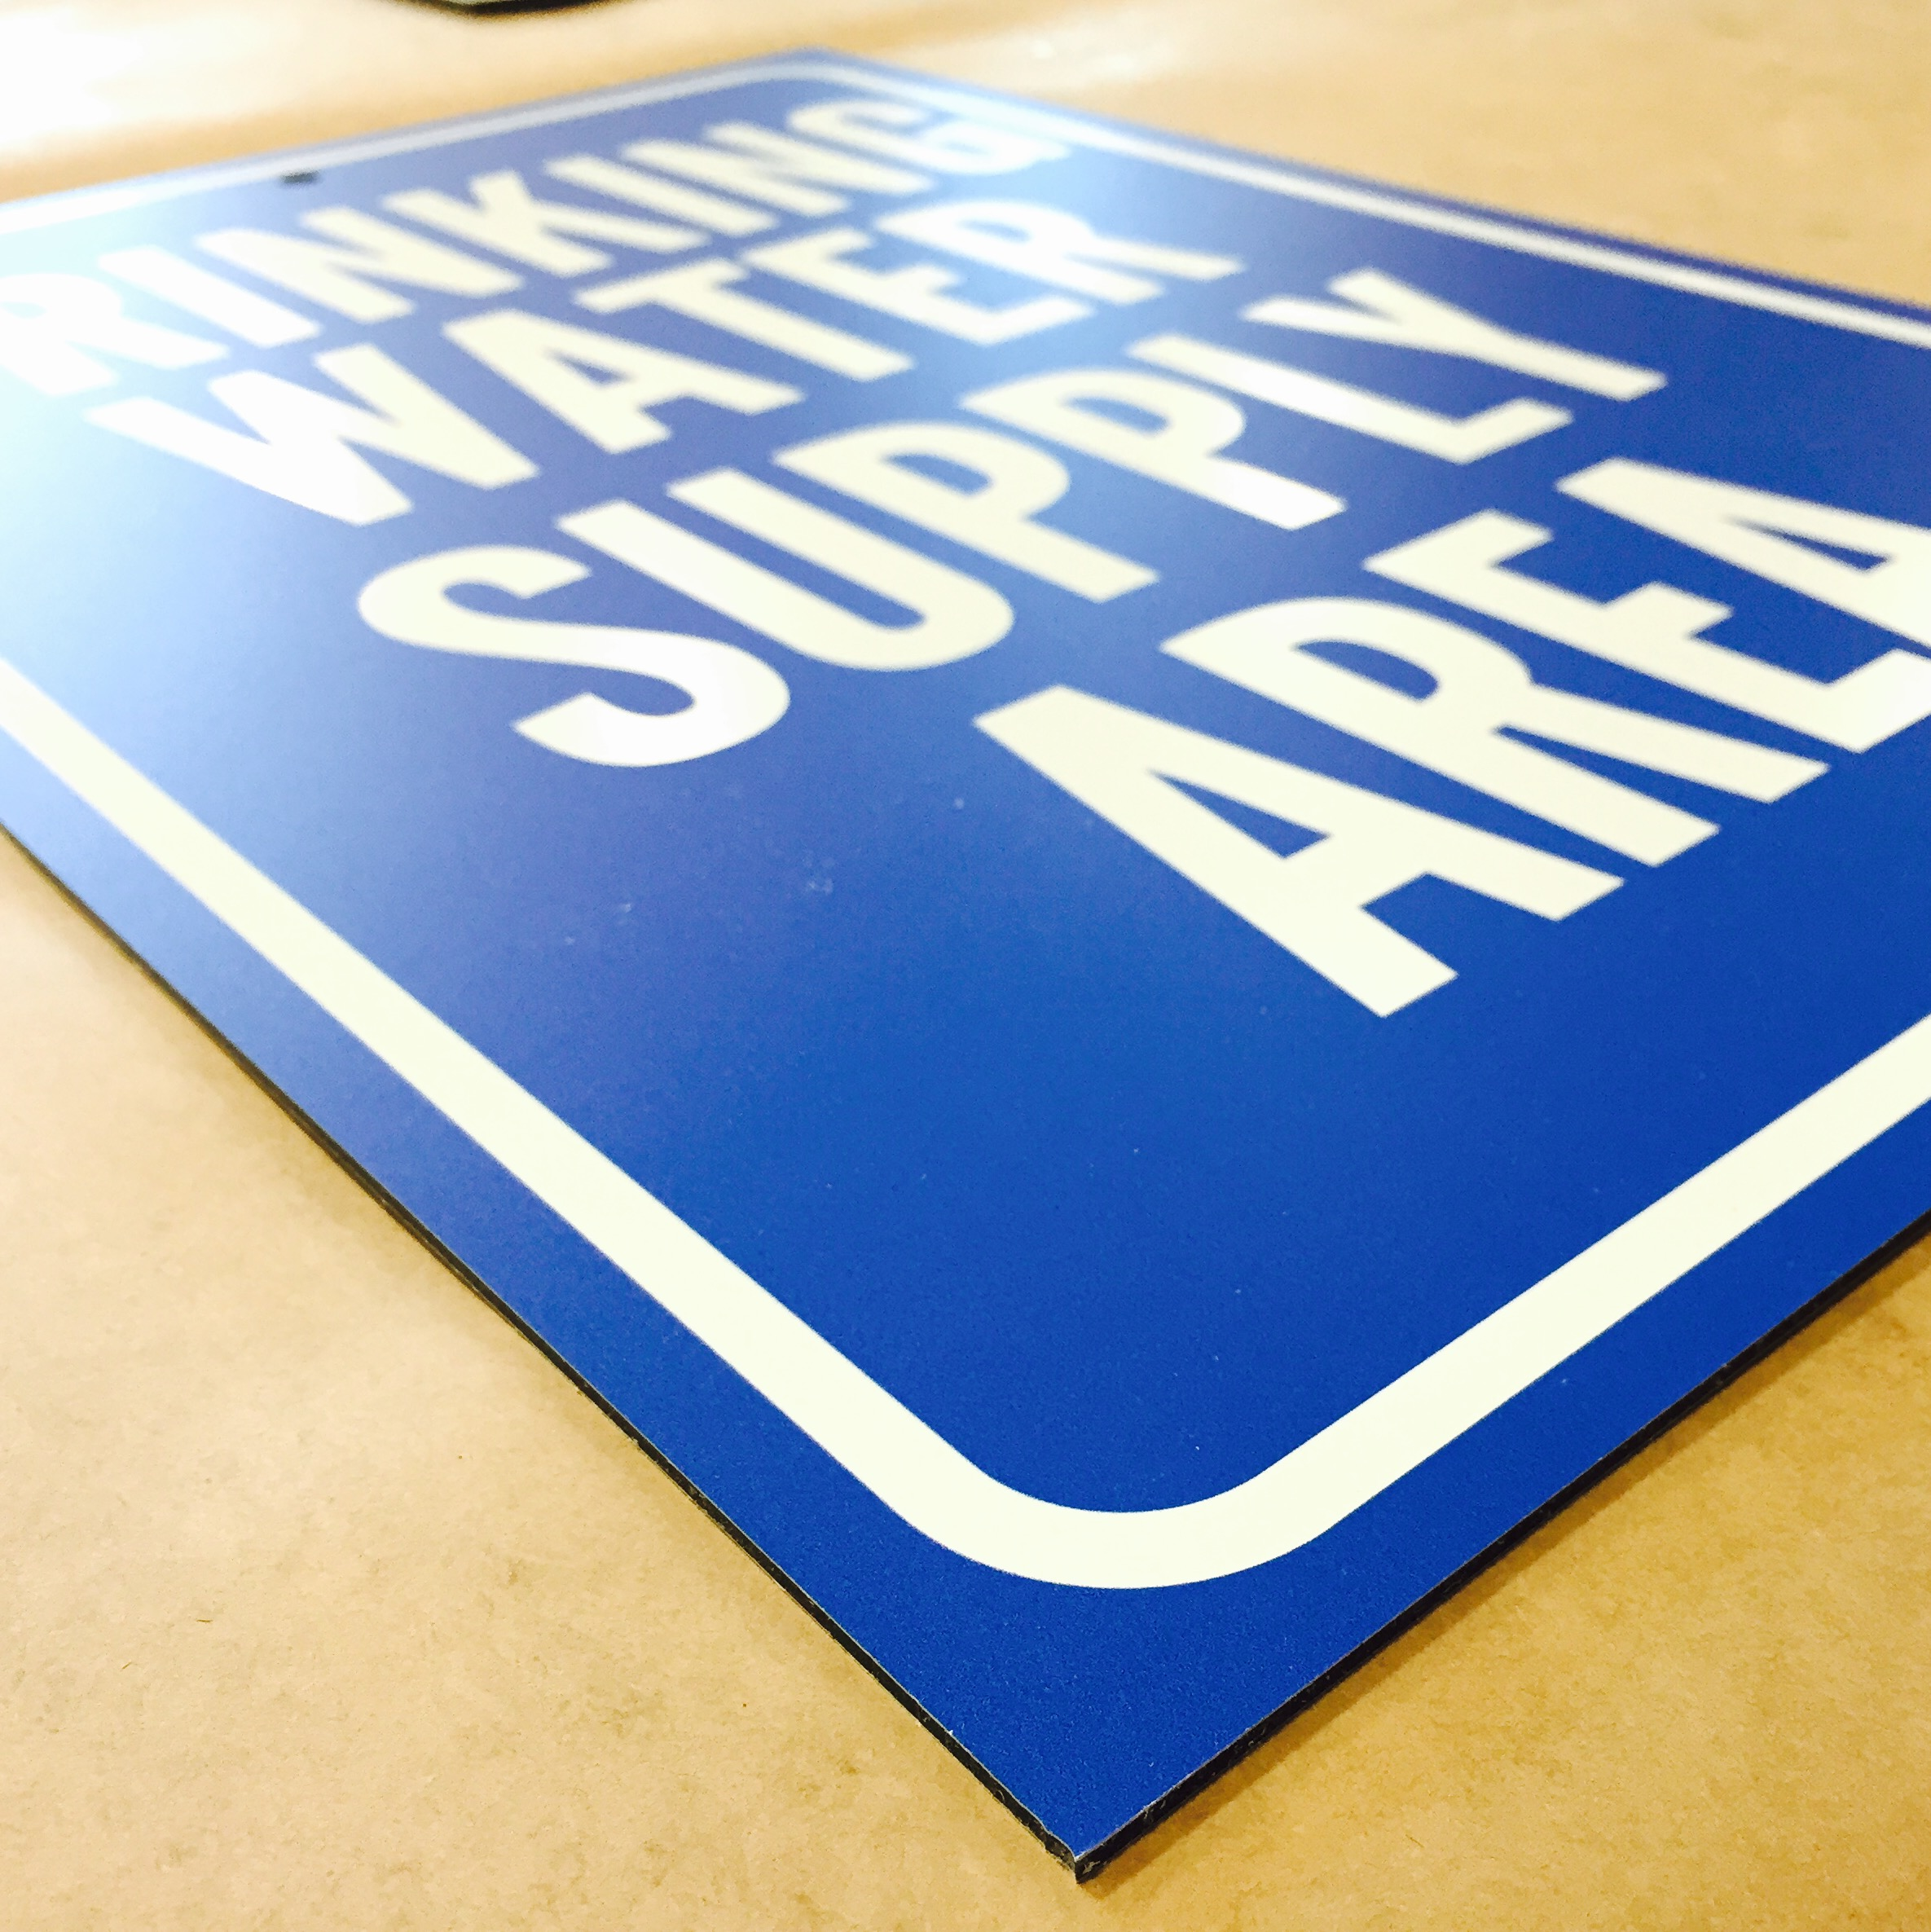 Standard Vs Brushed Aluminum Signage 101 Signs Com